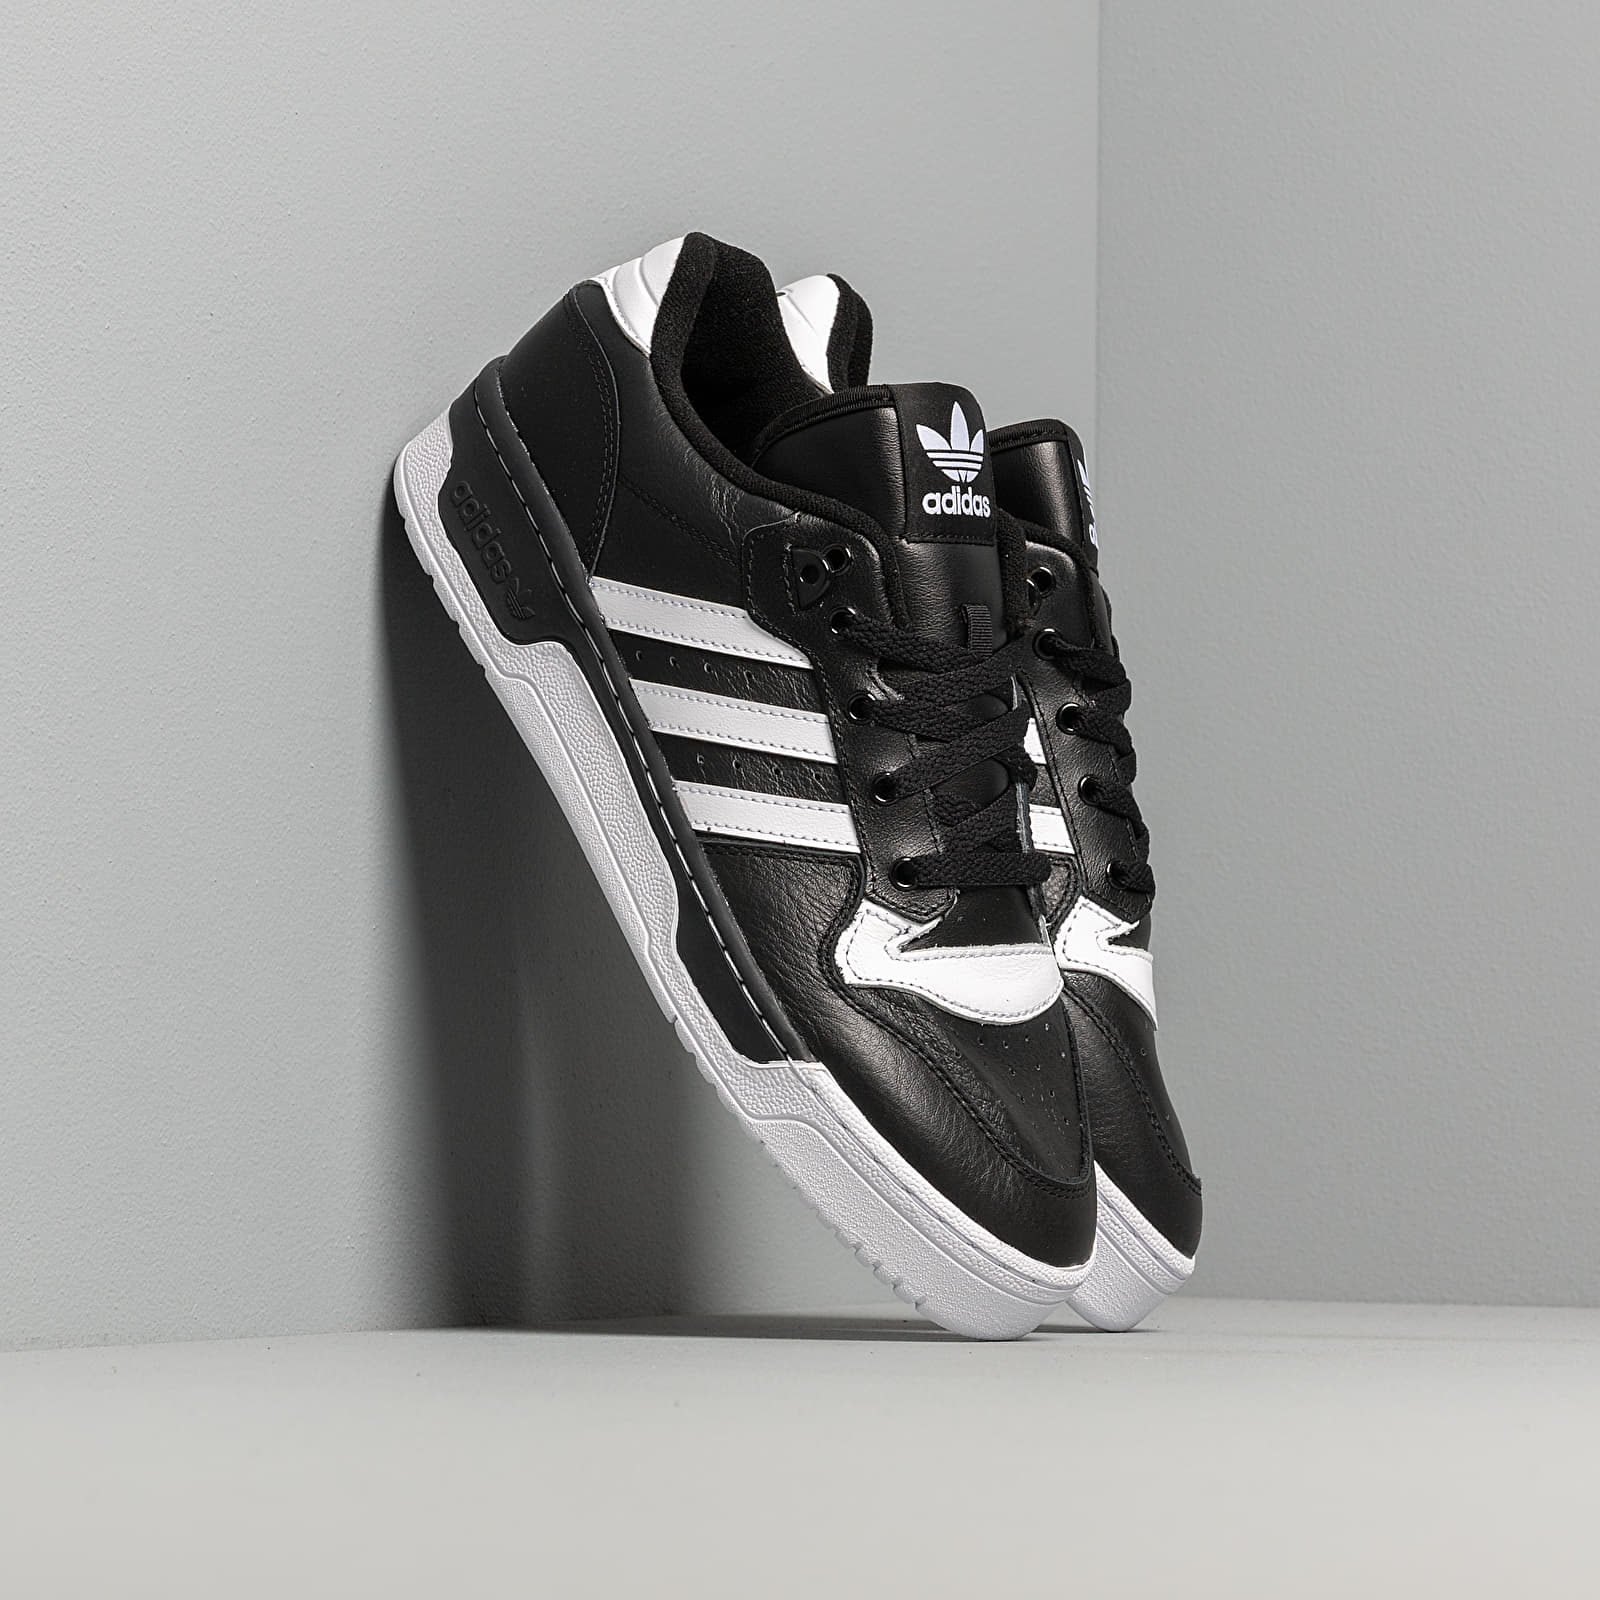 Zapatillas Hombre adidas Rivalry Low Core Black/ Ftw White/ Ftw White